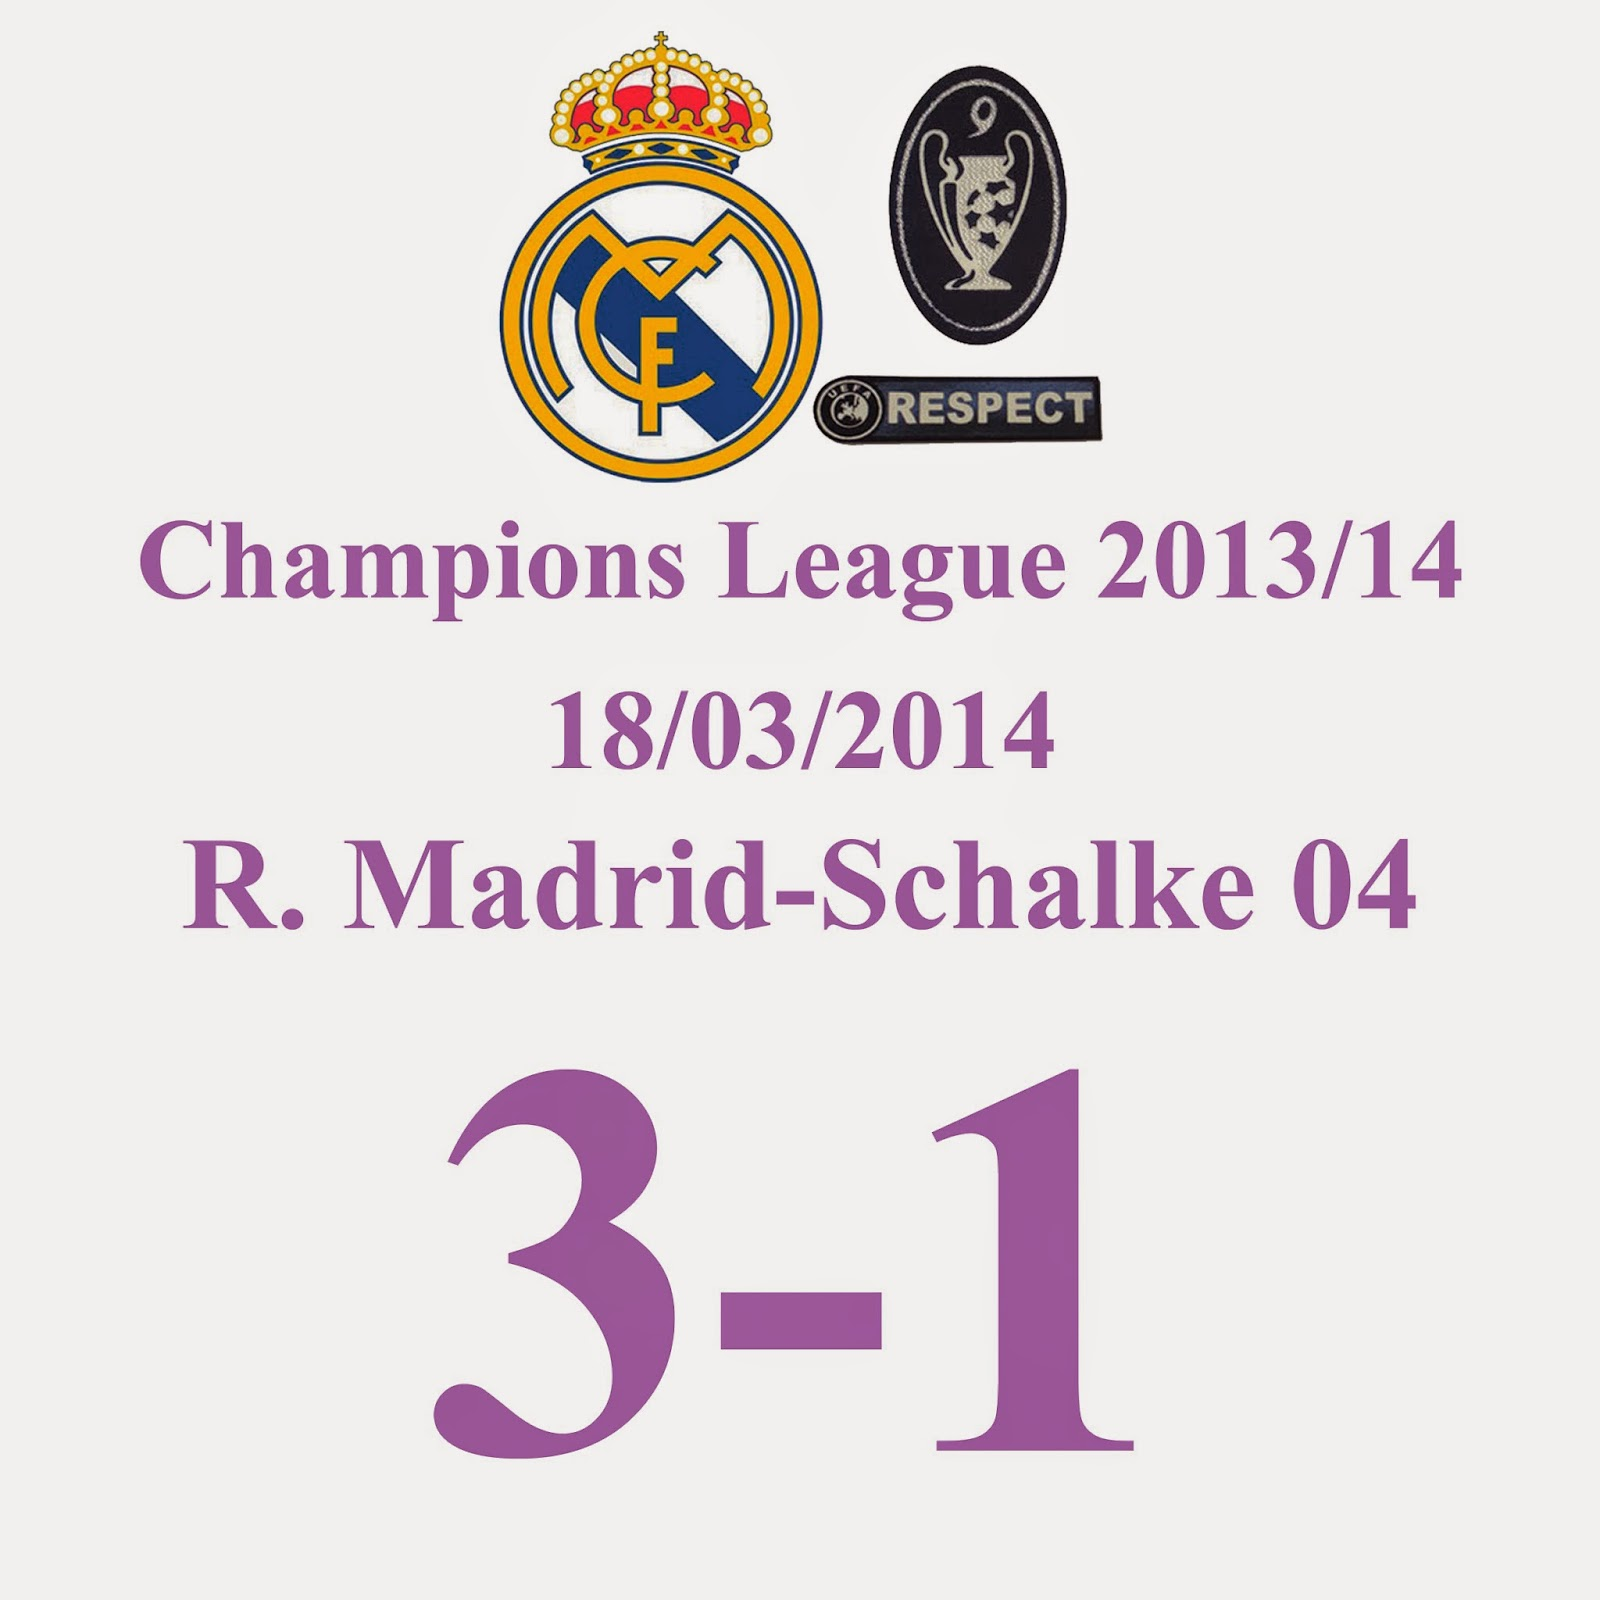 Real Madrid 3 - 1 Schalke - Resultado Global 9-2. Nuevo Record del Real Madrid la mayor ventaja en Octavos de Champions League de la historia.